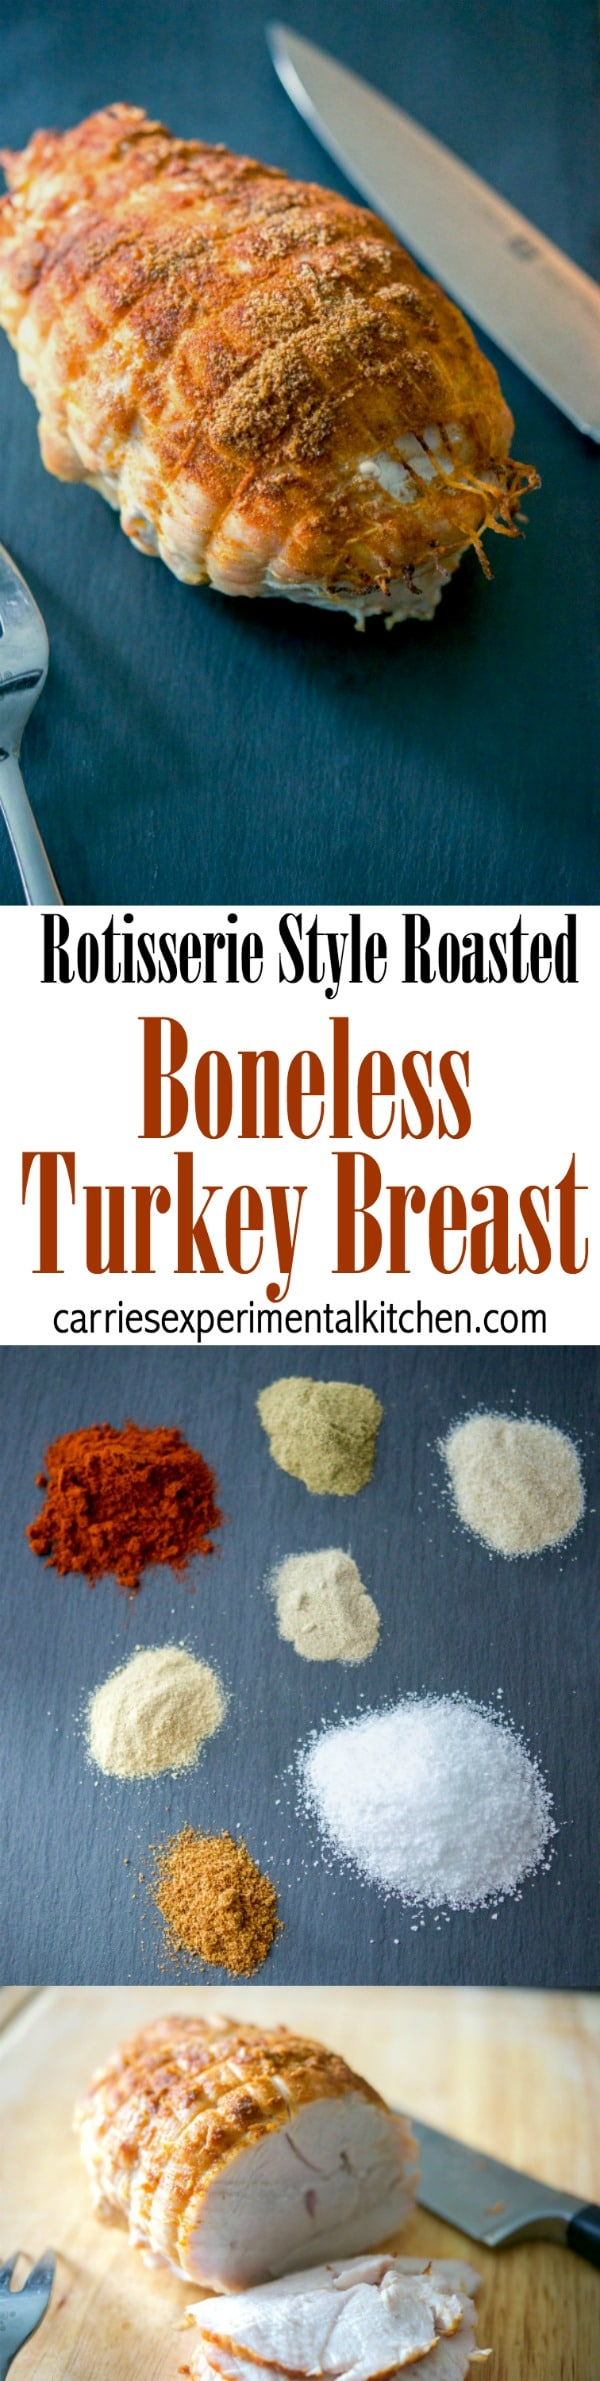 Boneless turkey breast seasoned with rotisserie seasonings including paprika, thyme, garlic and onion powder, salt, white and cayenne pepper.   #thanksgiving #turkey #sundaydinner